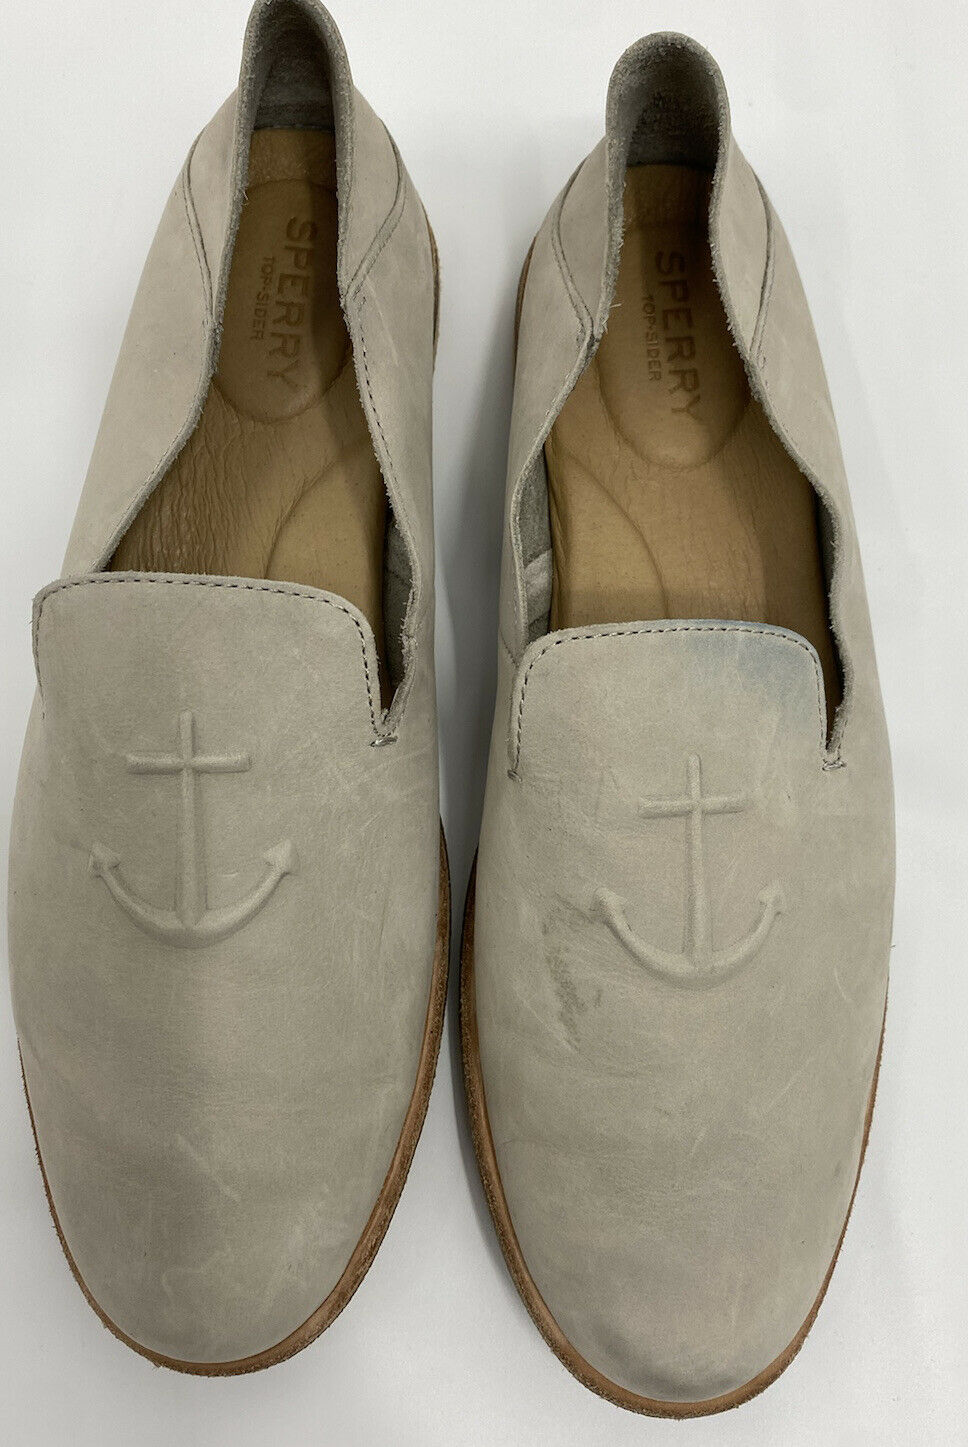 Sperry Top-Sider Womens Loafer Suede Leather Comfort Slip On Shoe Size 10